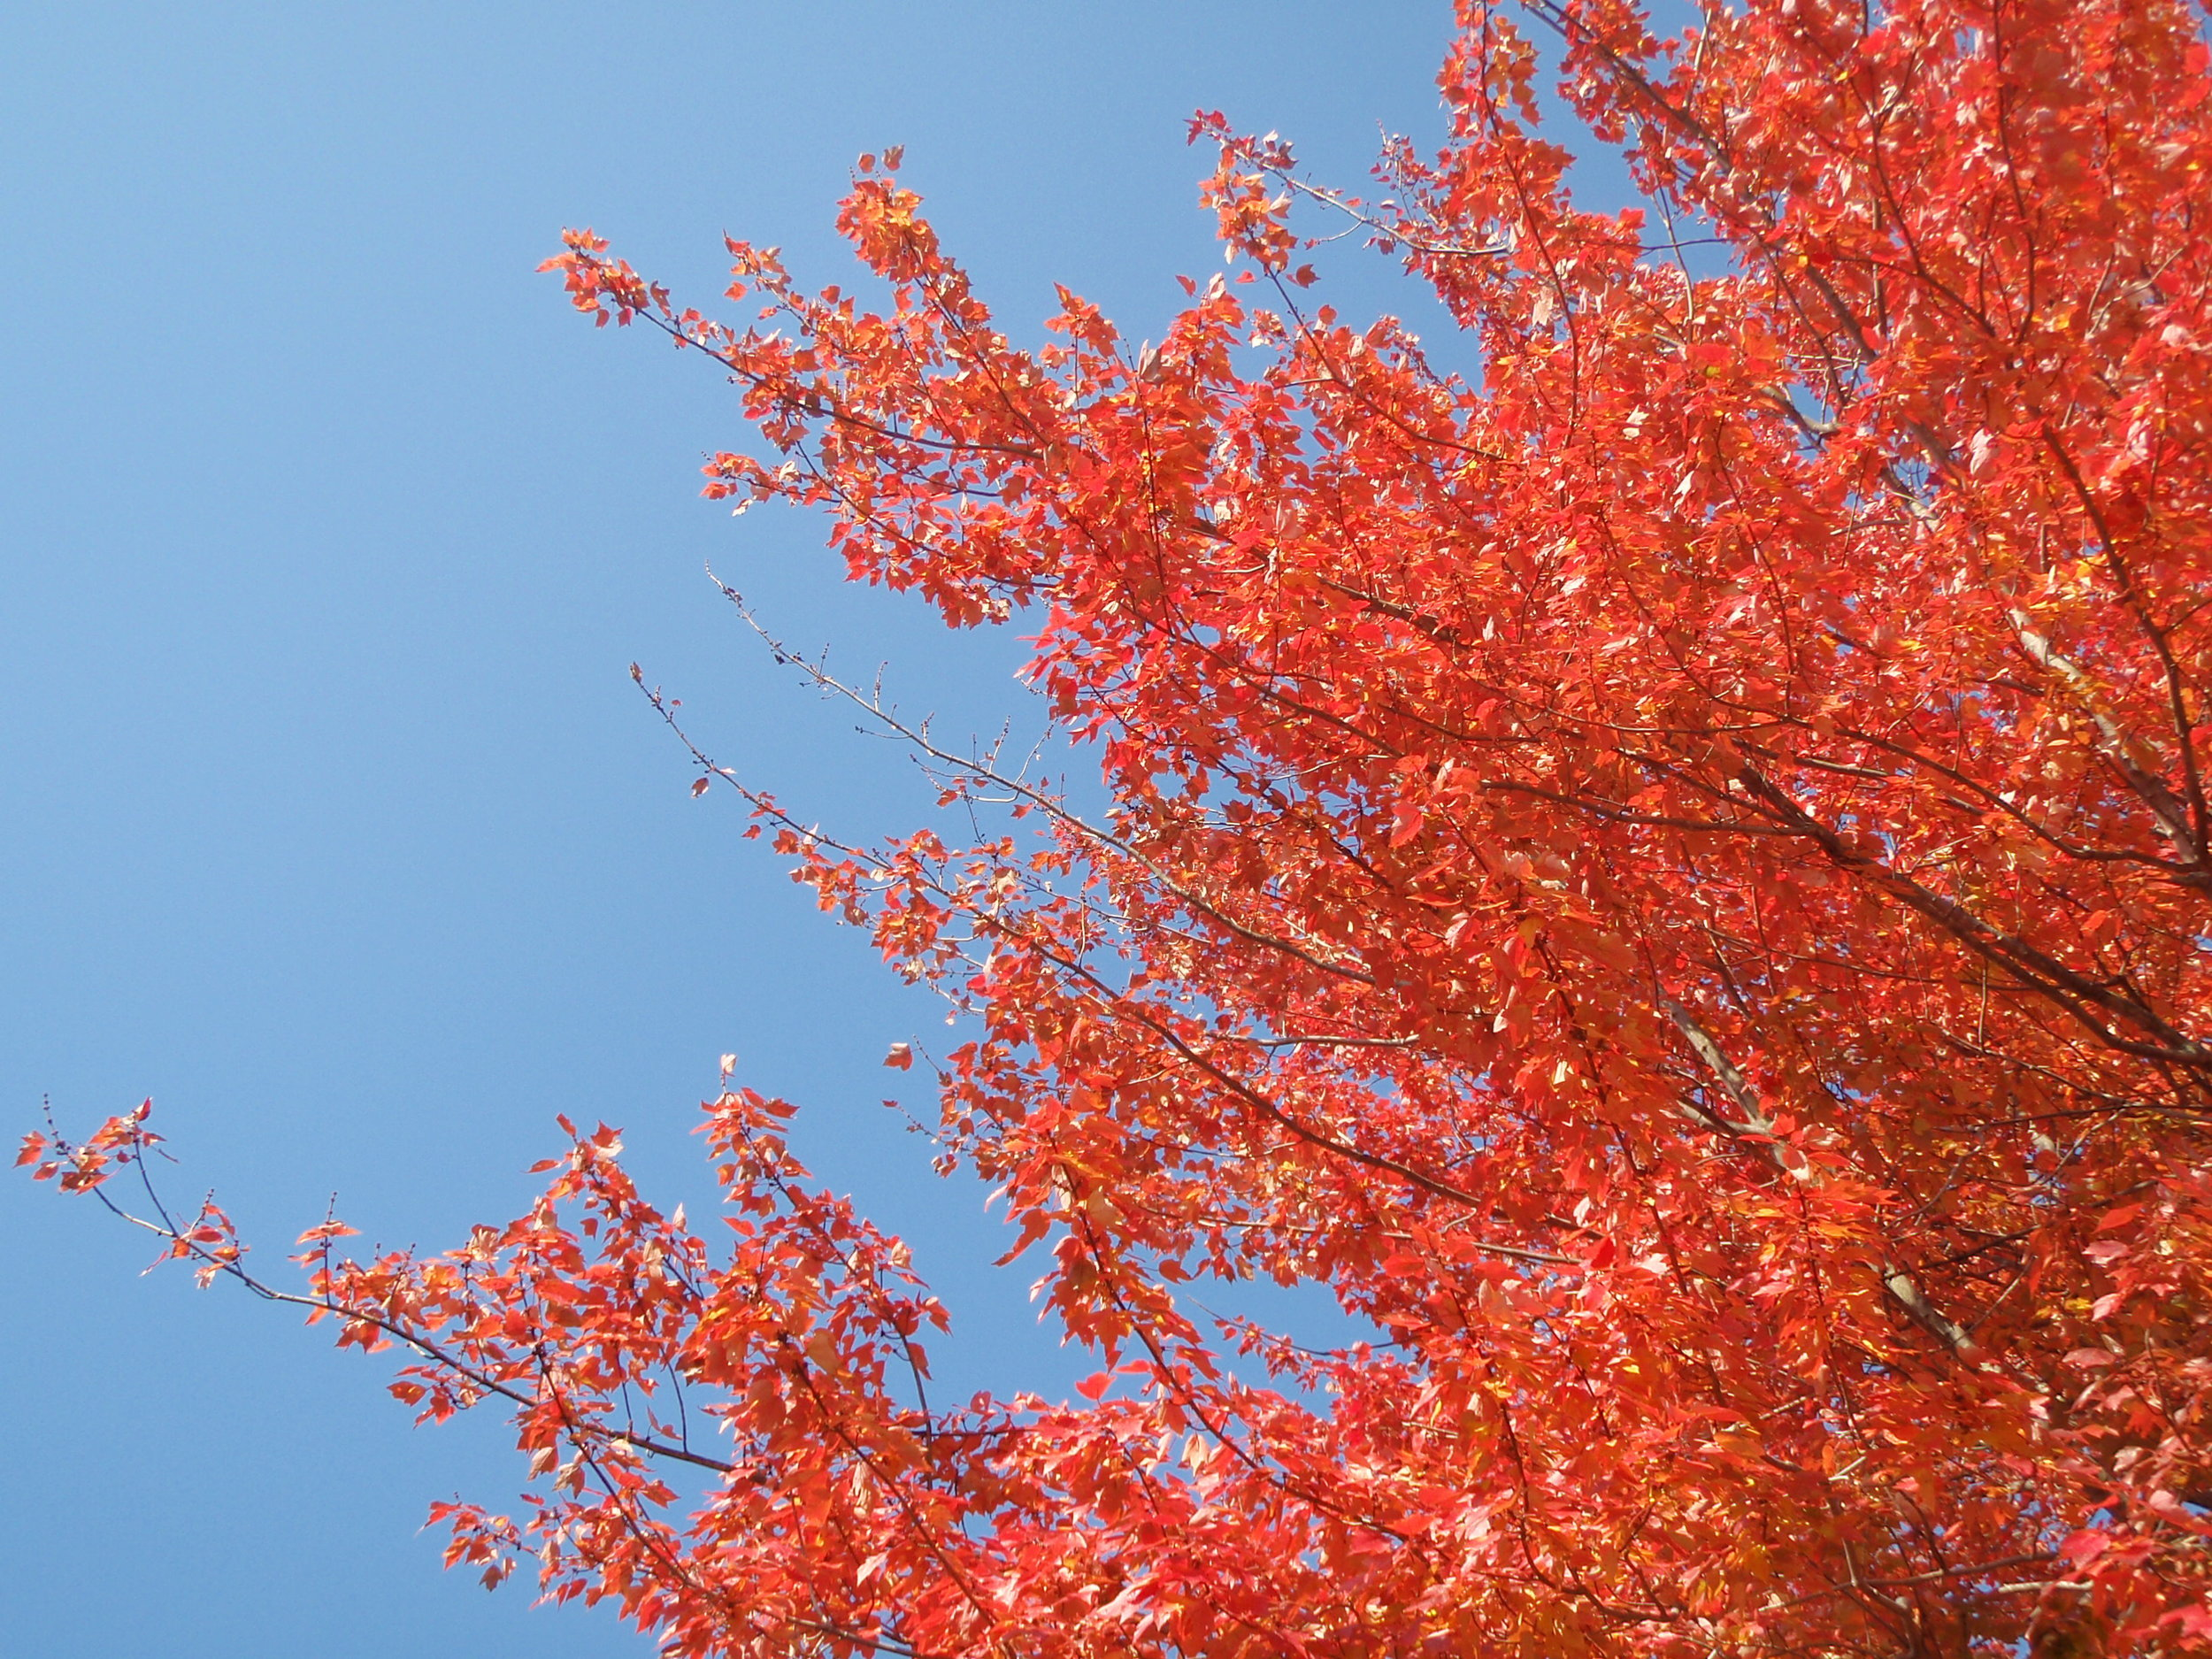 Maple leaves in the morning light of October.